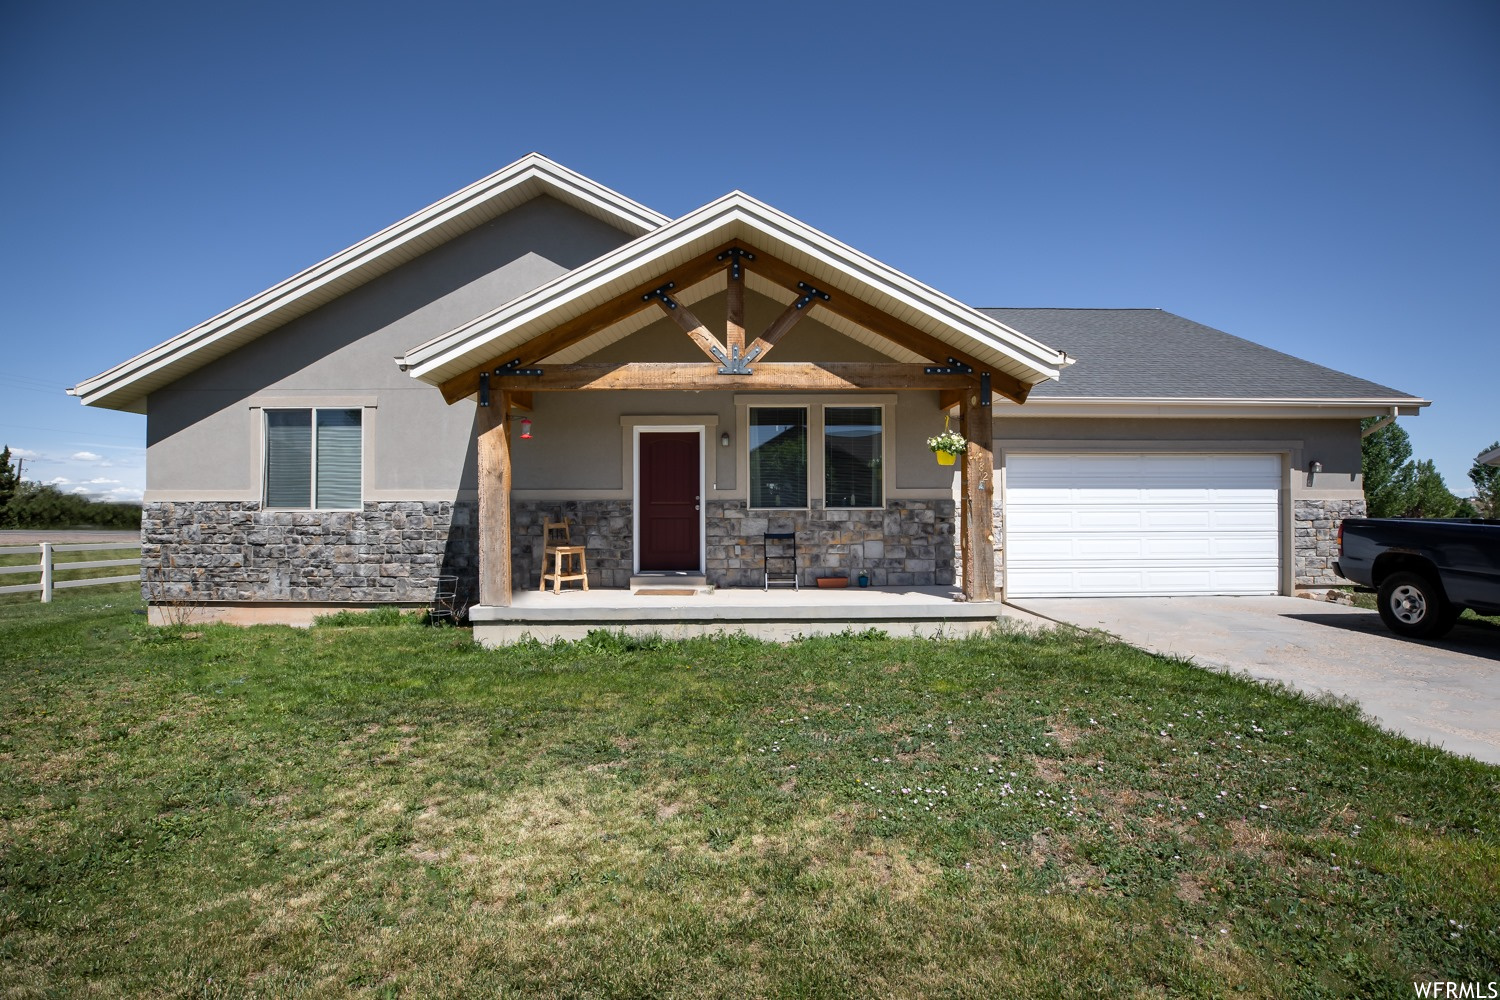 482 N DELMAR WAY, Vernal UT 84078